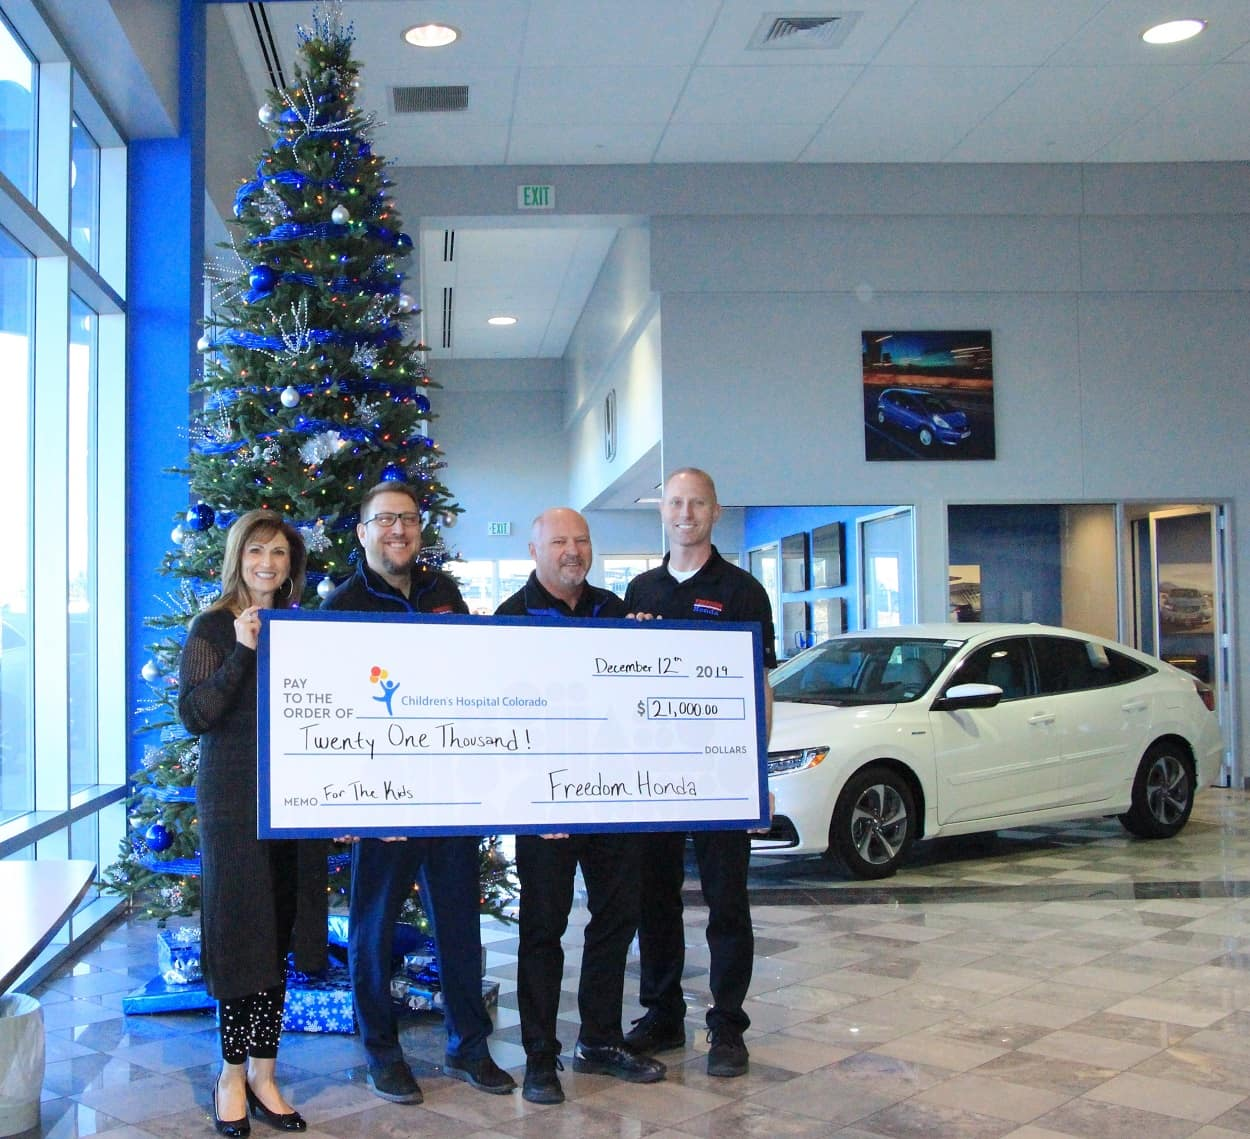 2019 Freedom Honda Giant Check Donation to PMHI in Front of Christmas Tree